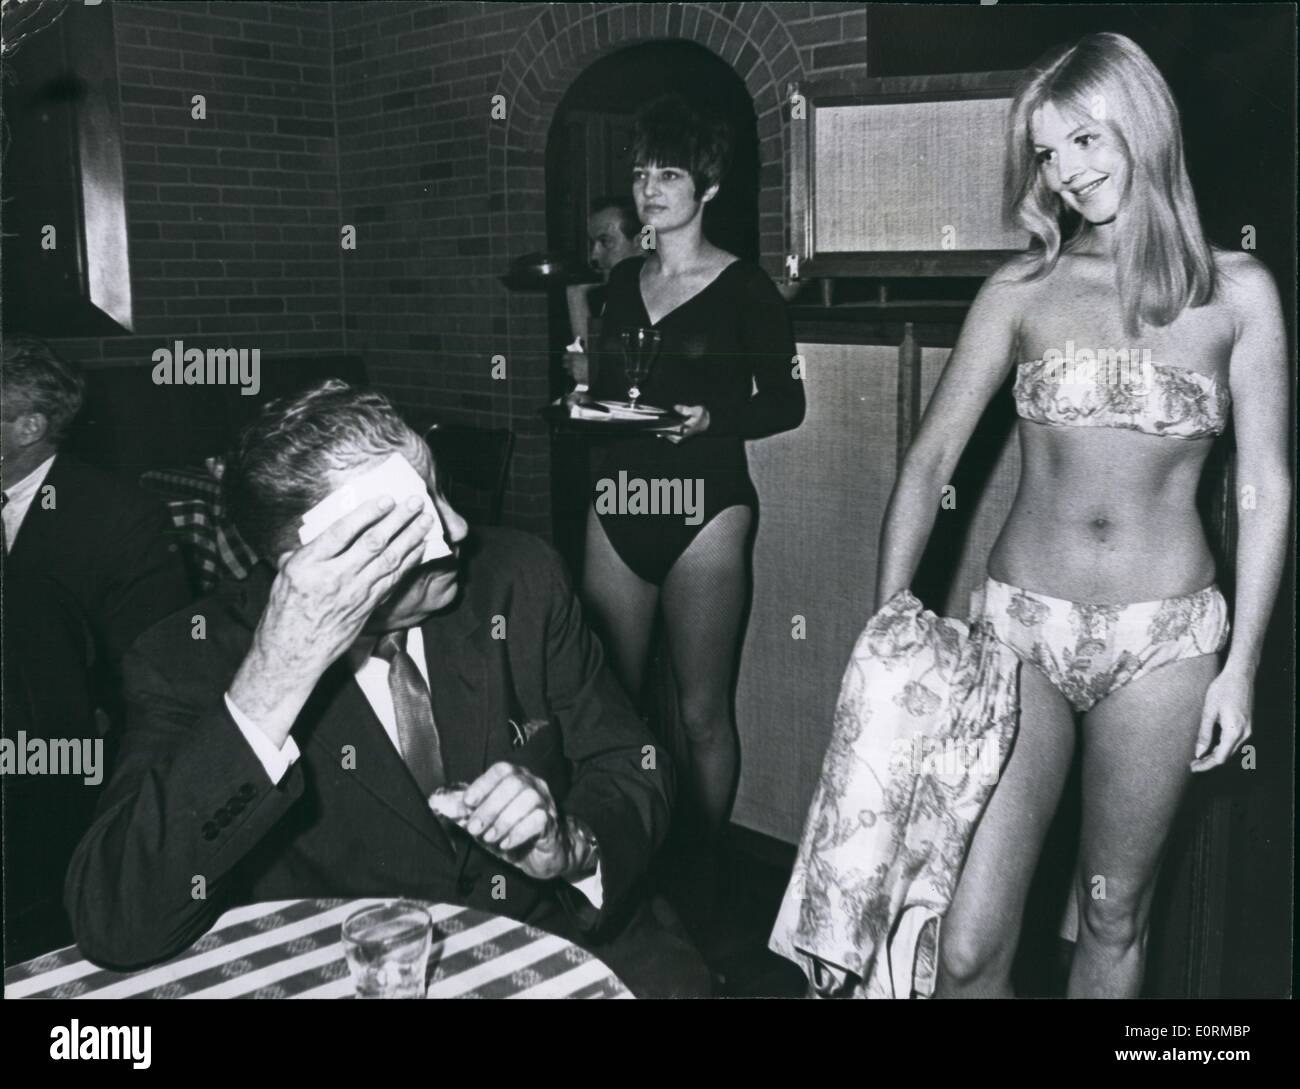 Jan 1, 1960 - Lunch-time bikini show at New York's Our Place Discotheque - Stock Image